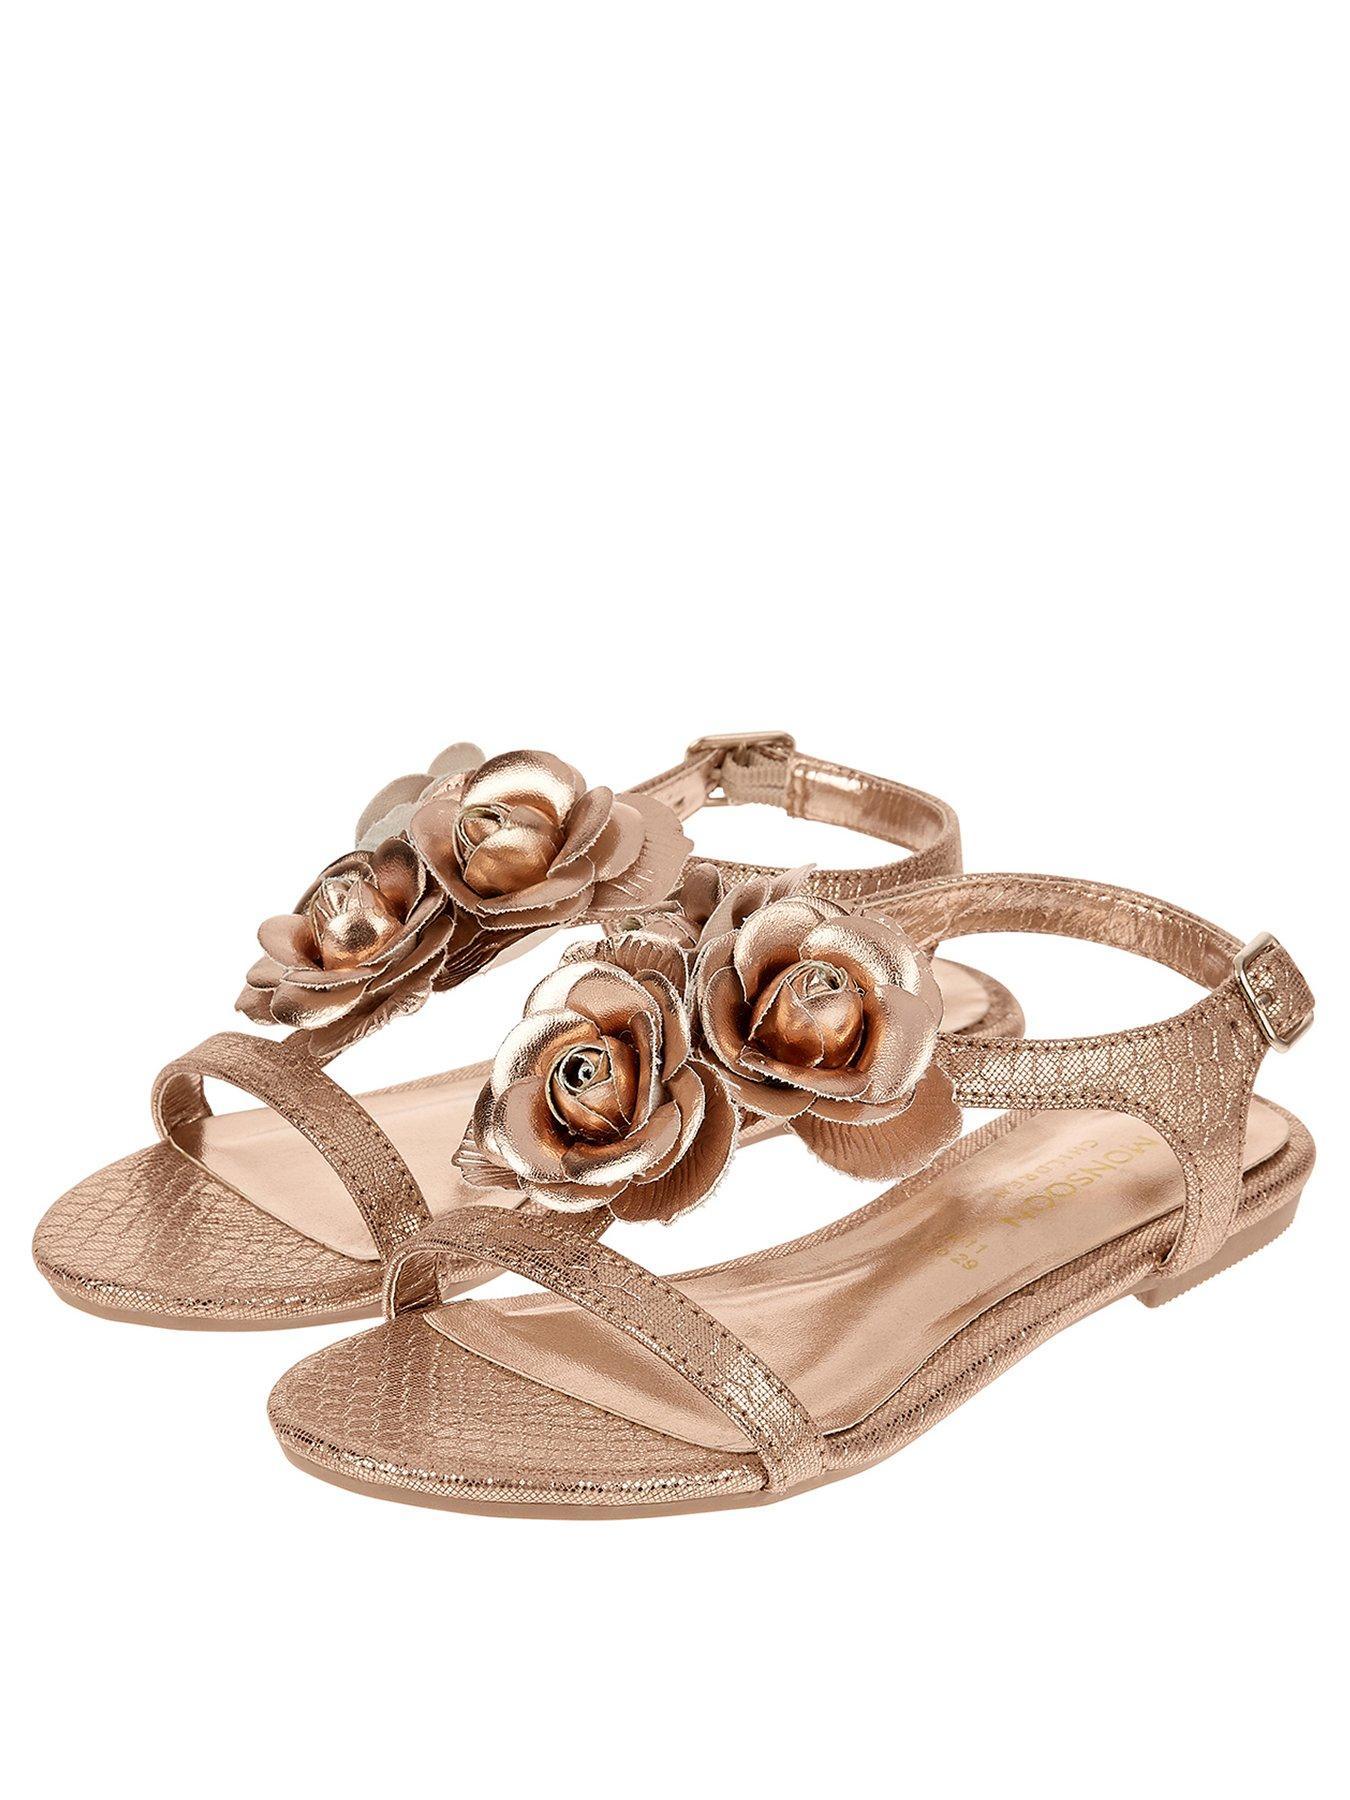 Sunny Brand New Monsson Girls Gold Sandals Size 12 Kids' Clothes, Shoes & Accs.